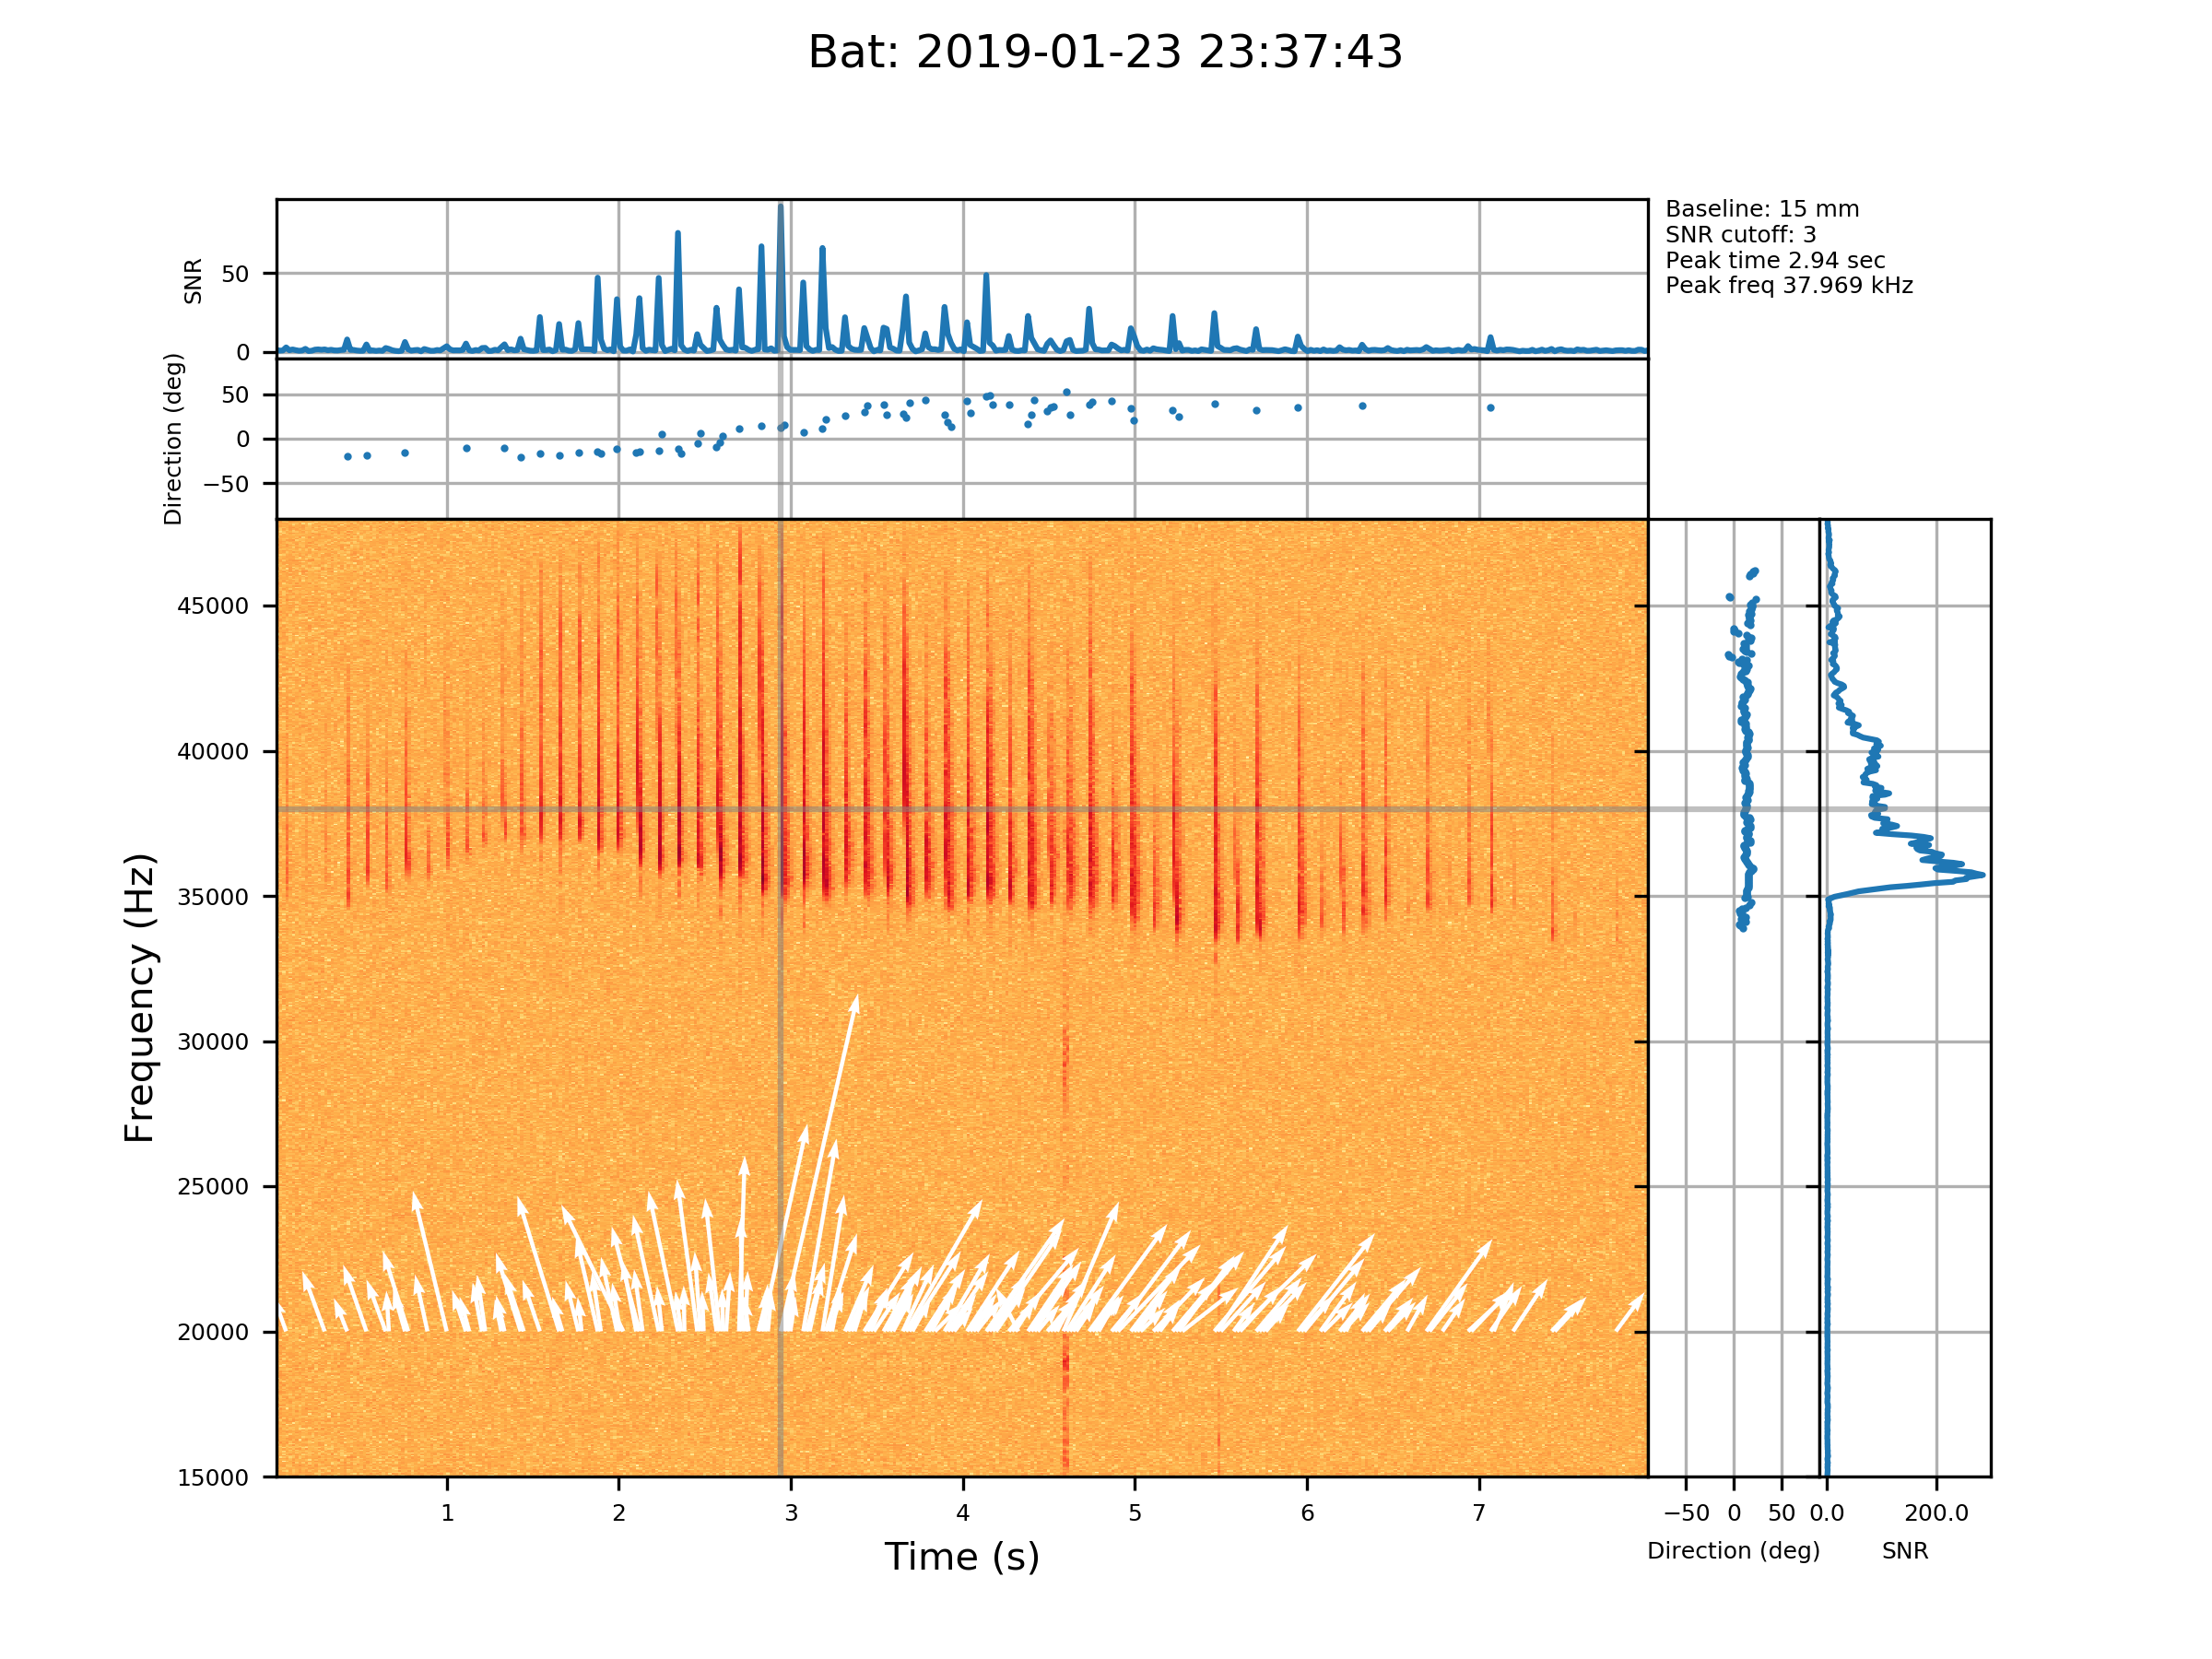 A long-eared bat  (Nyctophilus spp)  (I think!) observed on 23 Jan 2019. The main panel shows the spectrogram and the white vectors are the measurements of direction to the signal (vector length is related to signal strength). The top two panels show signal strength (measured in signal-to-noise ratio) and direction as a function of time at 38 kHz (indicated by the horizontal line). The two right panels show SNR and direction as a function of frequency (indicated by the vertical line) at the time of the peak. Note the clear change in direction as the bat flies past!